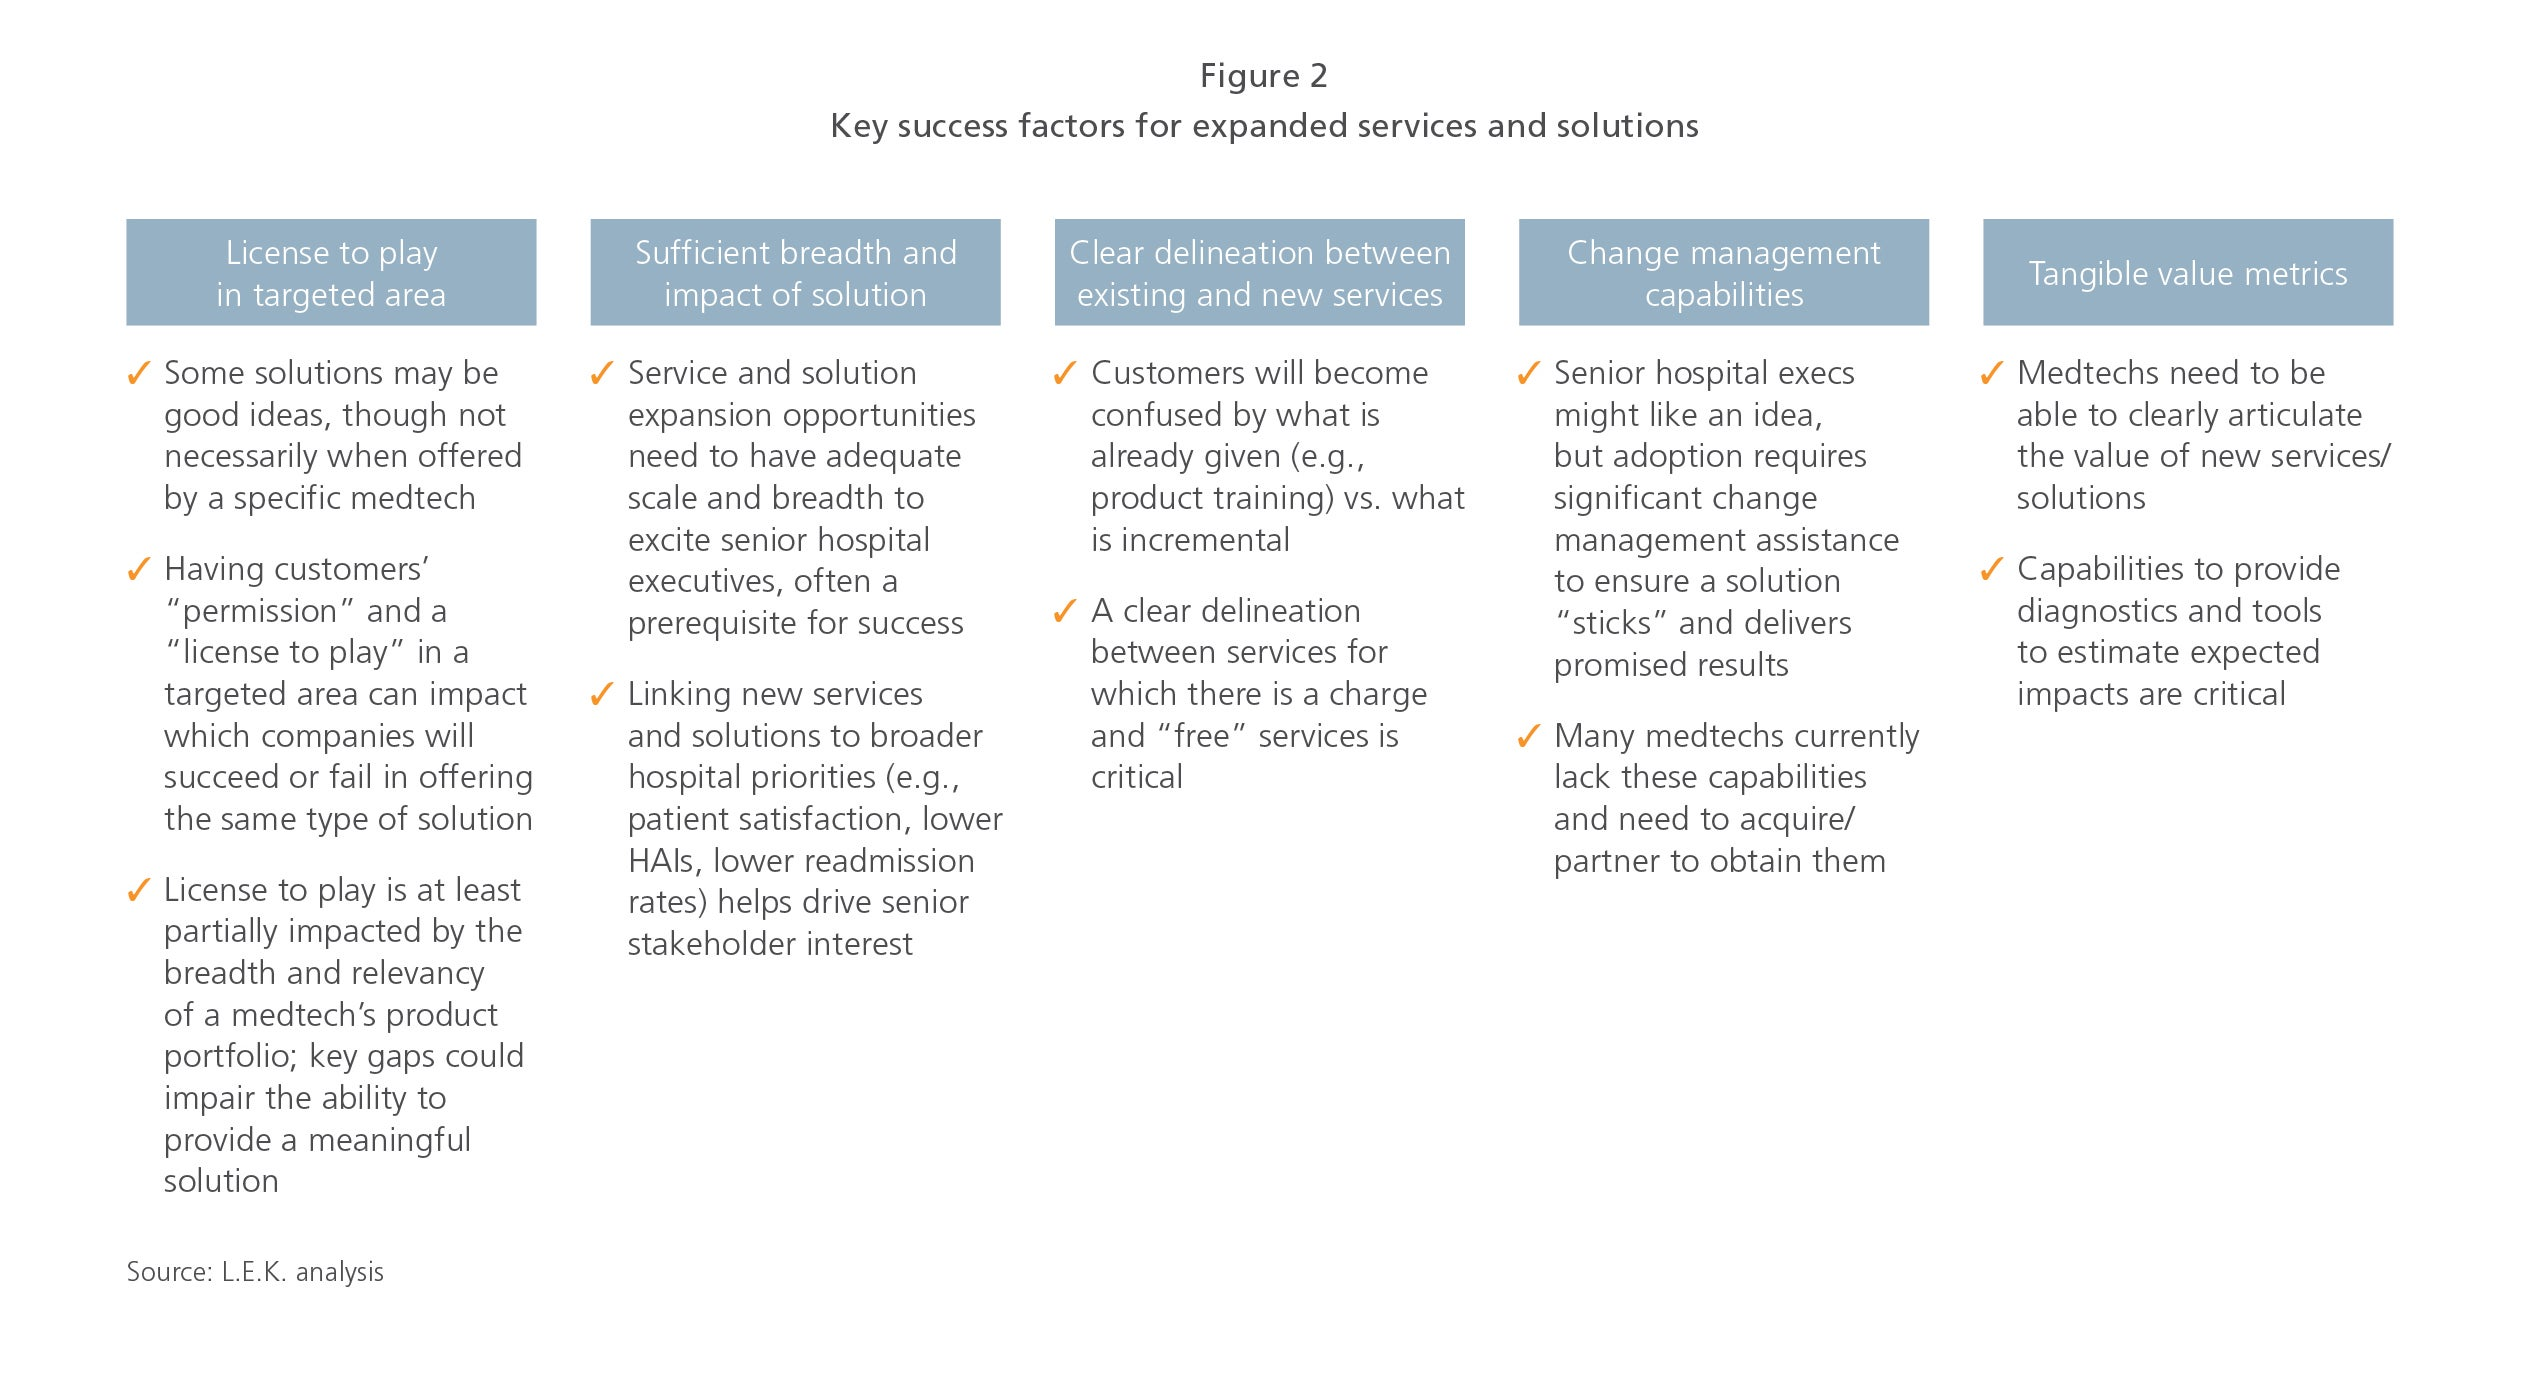 Key Success Factors for Medtechs figure 2